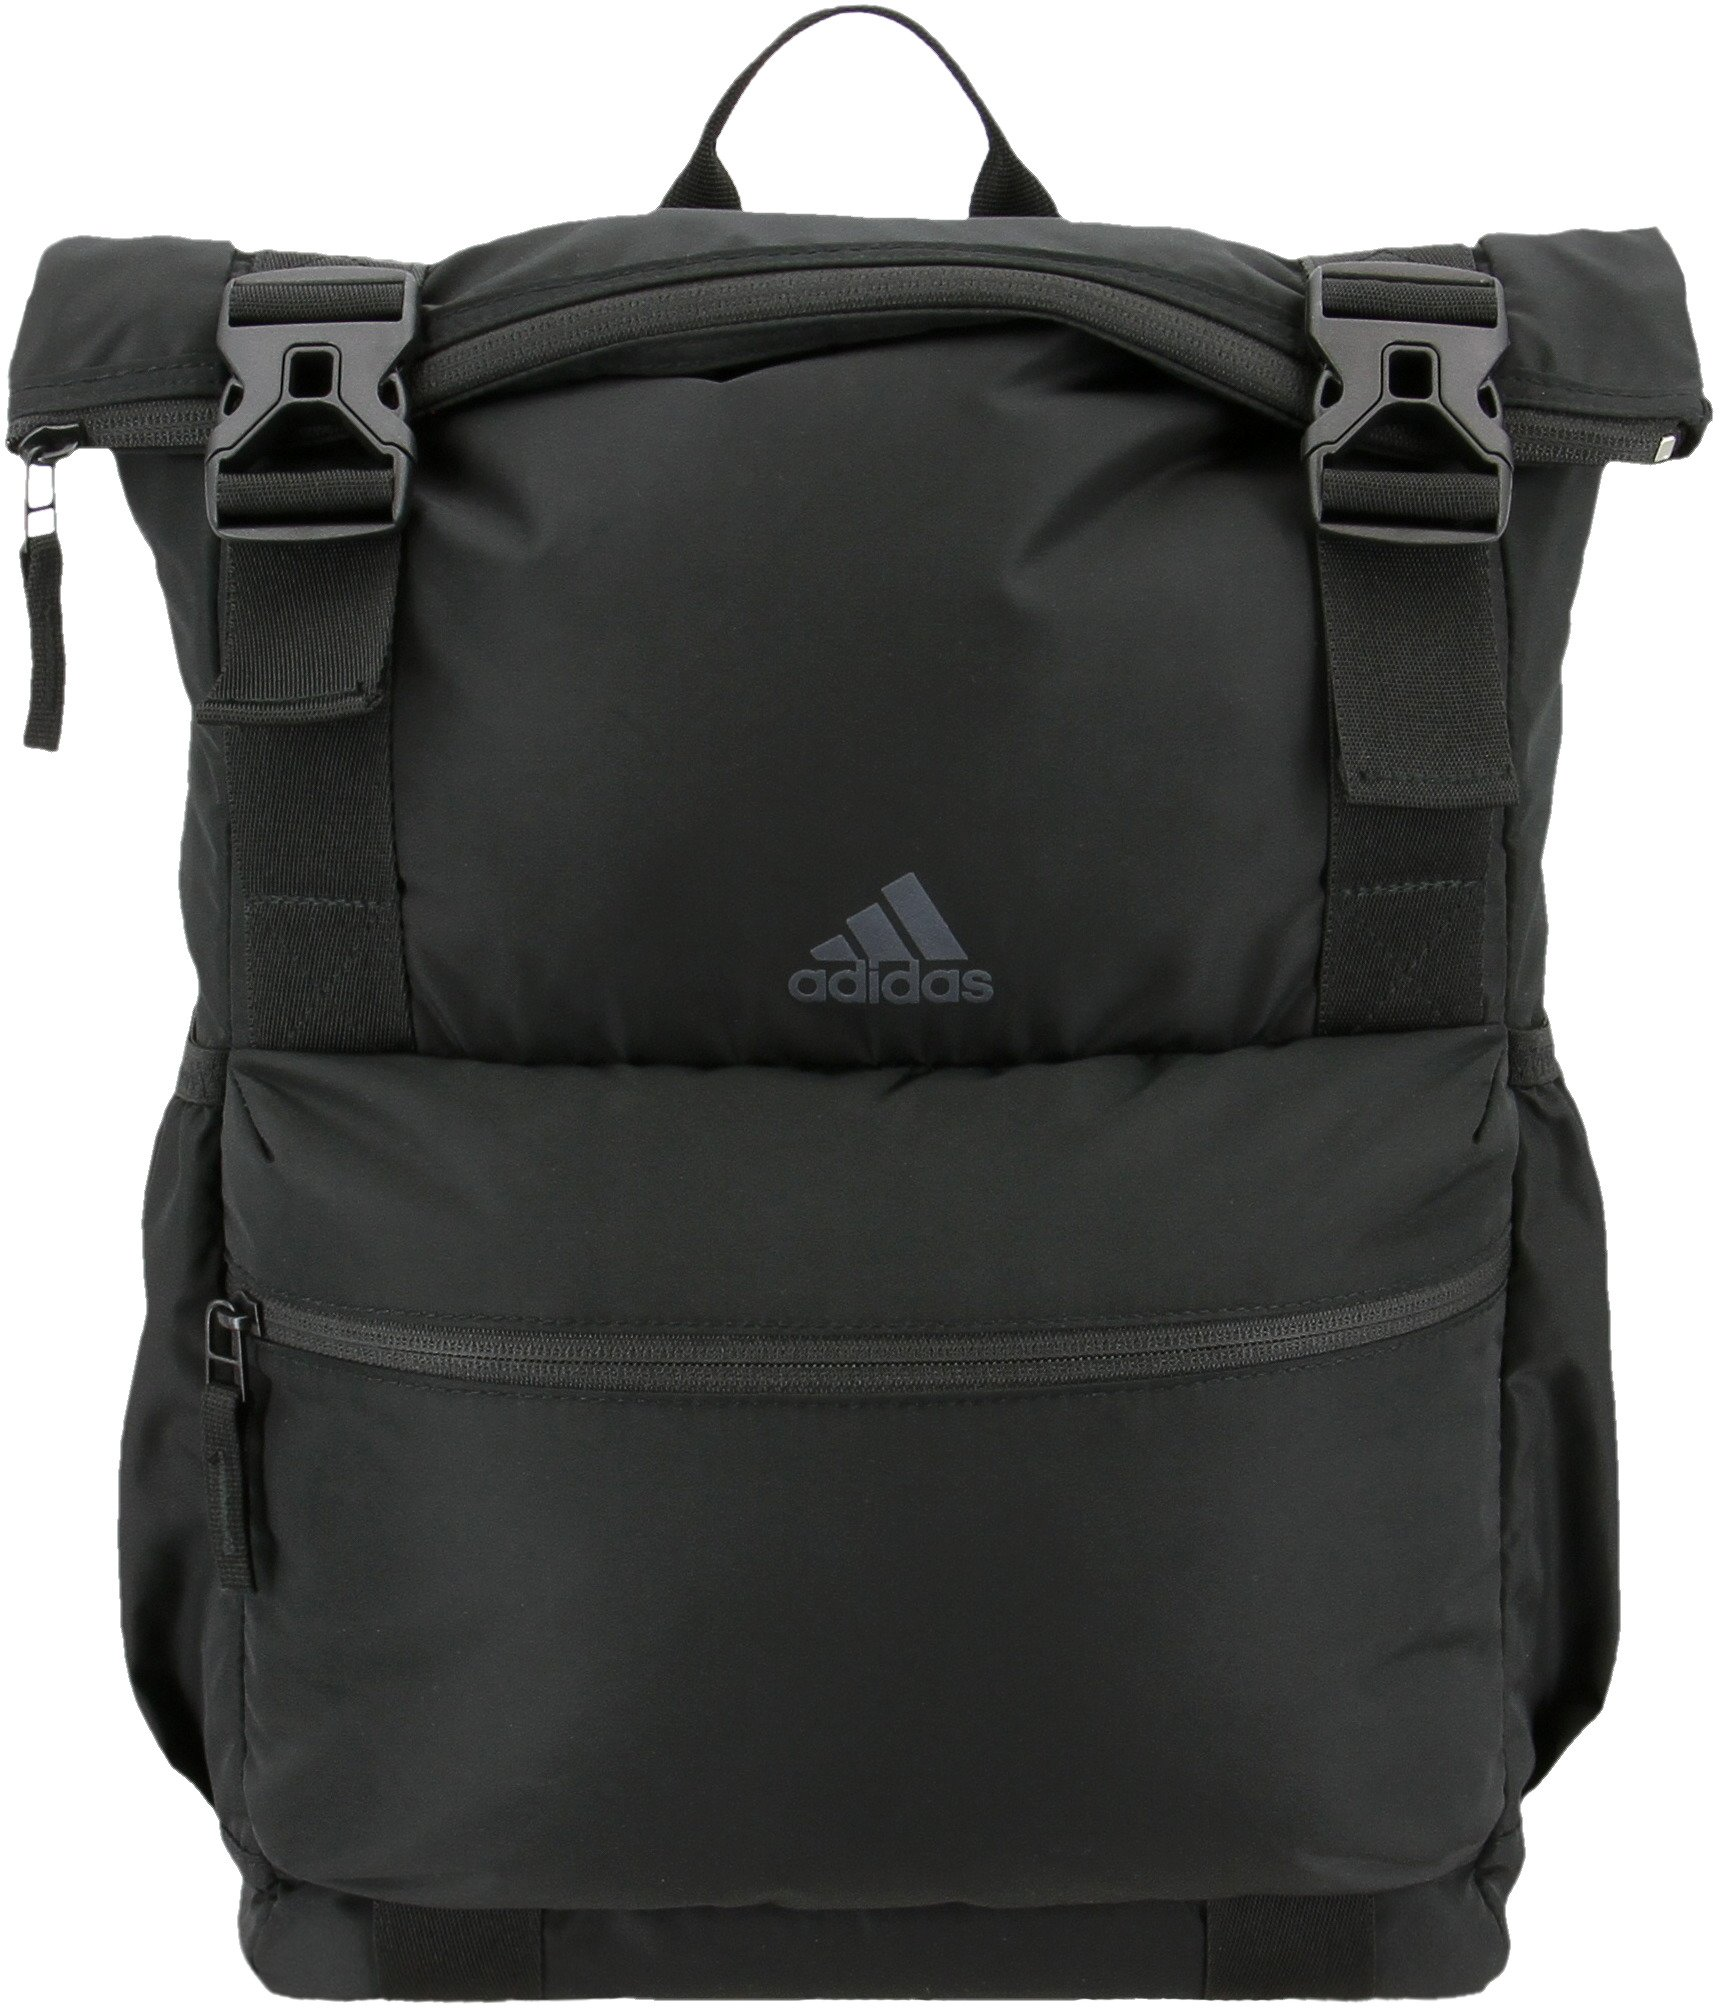 adidas Unisex Yola Backpack, Black, ONE SIZE